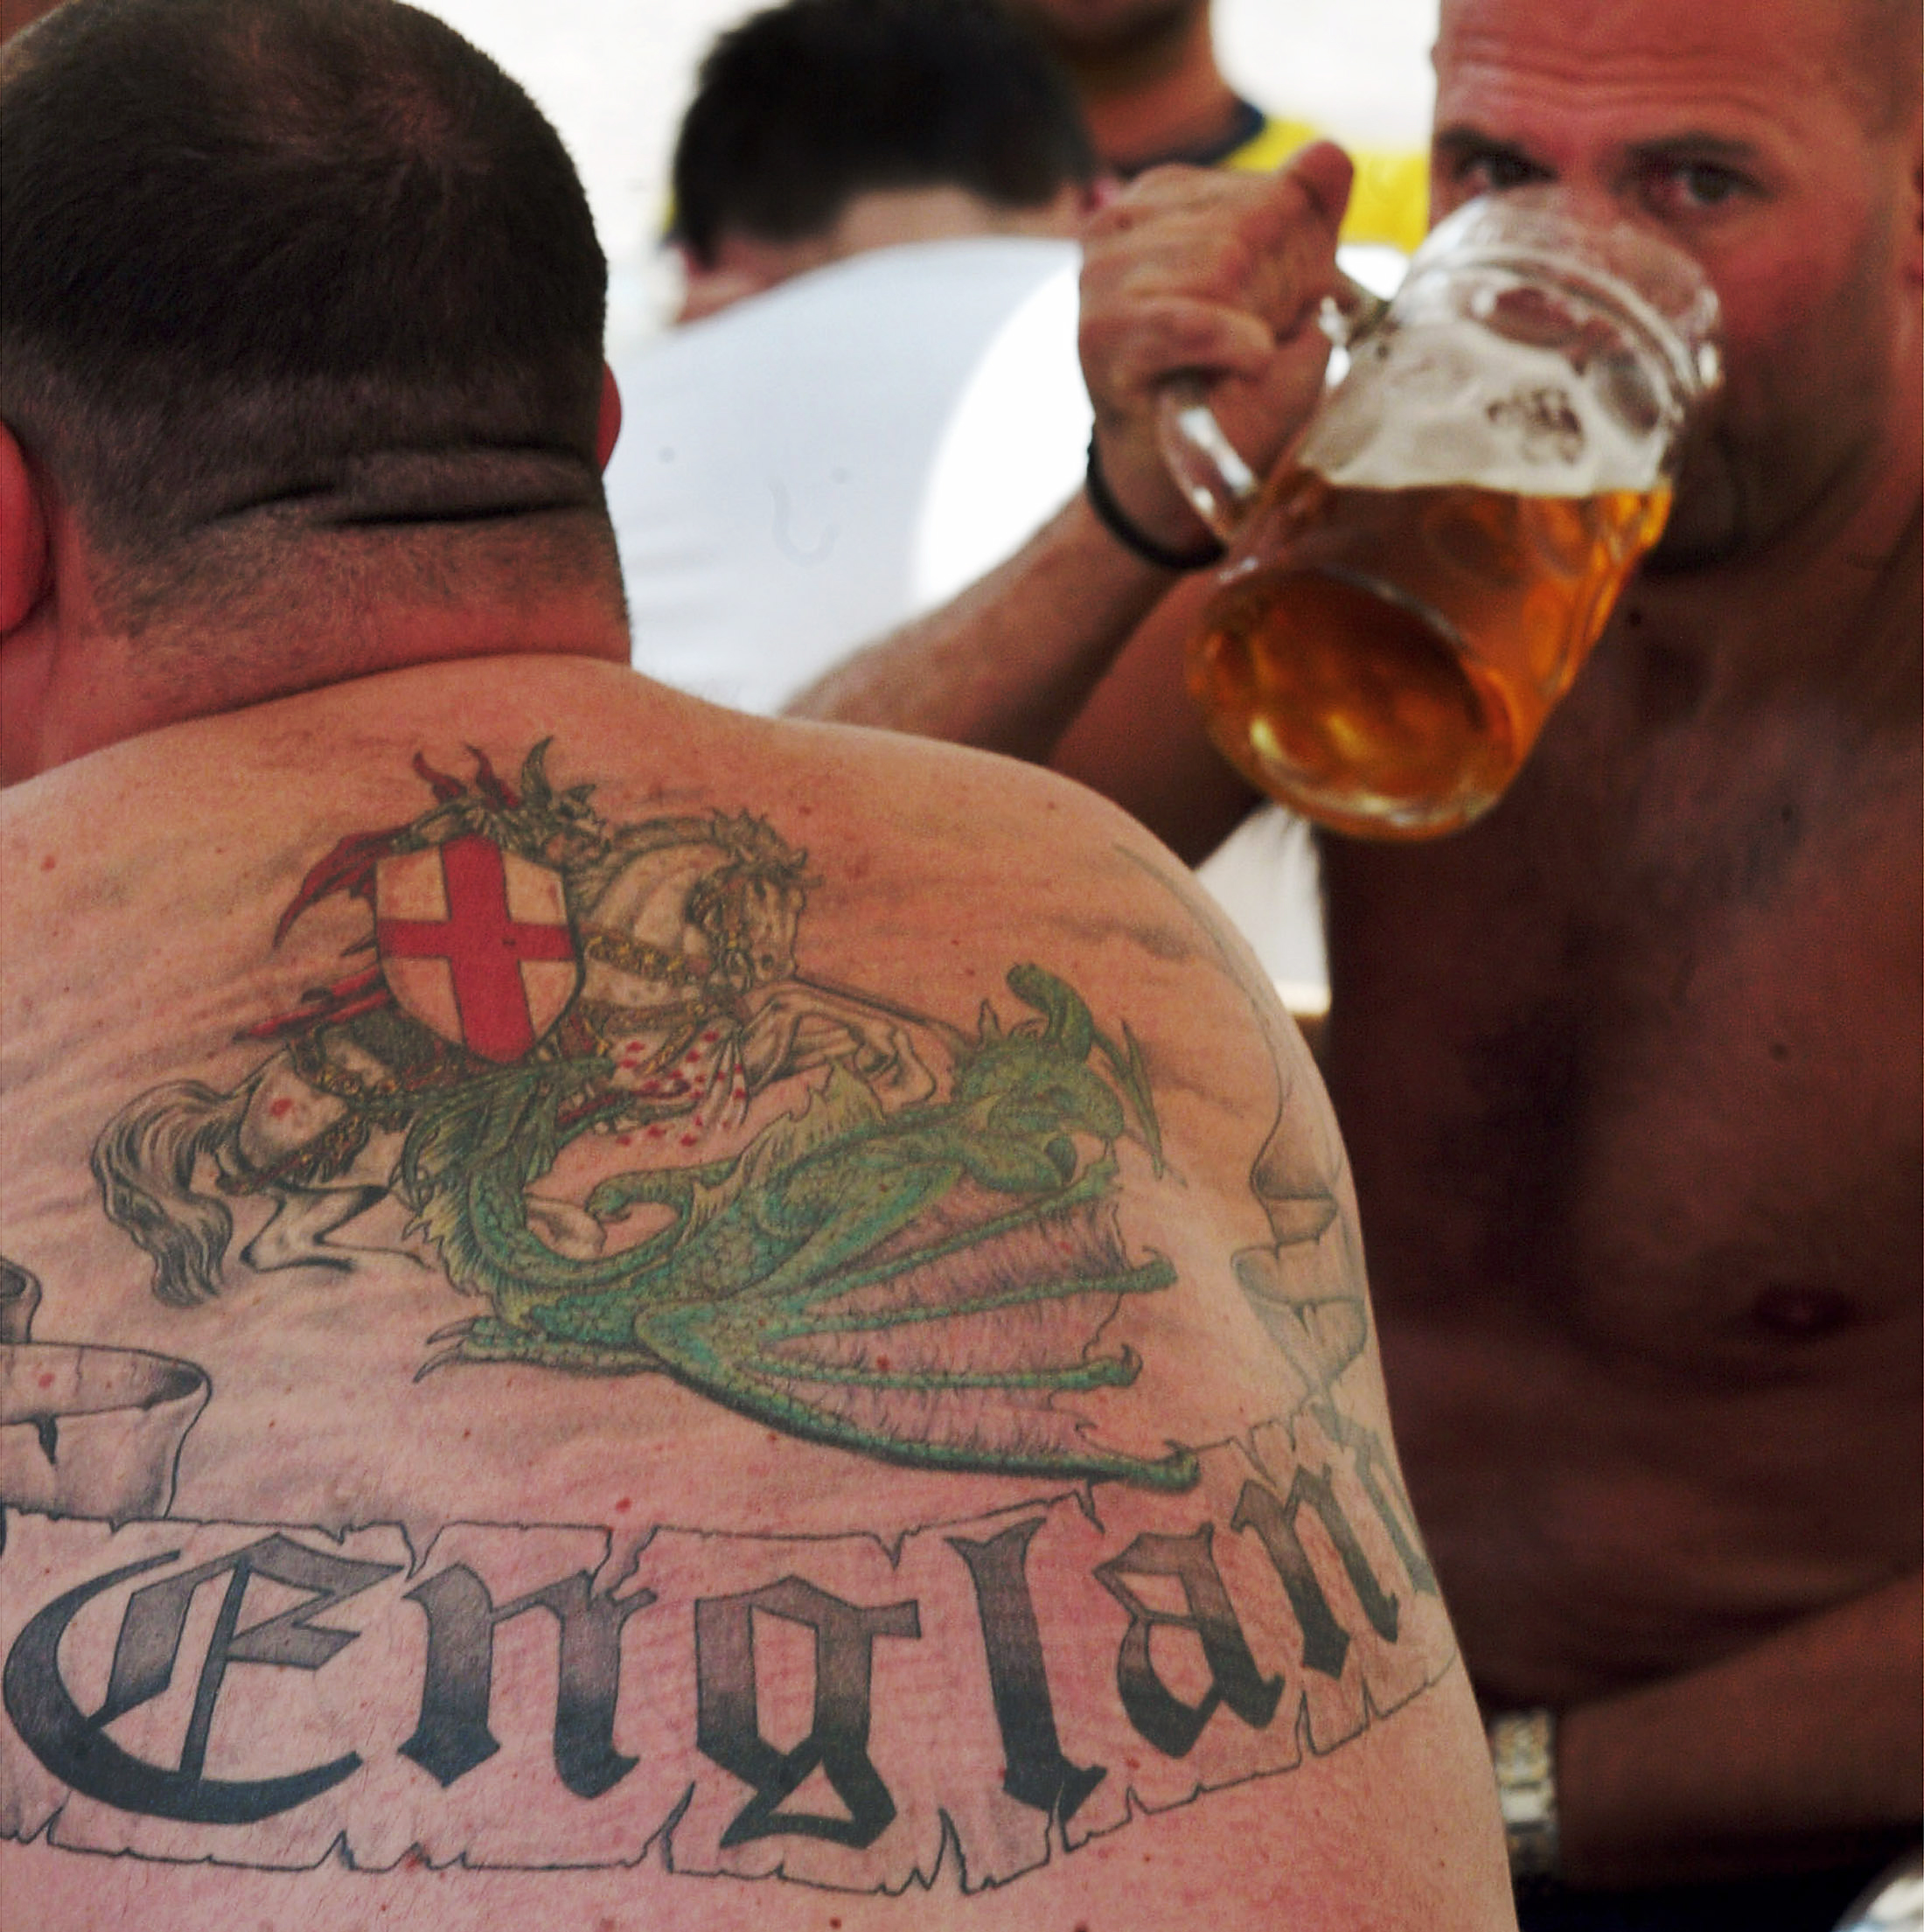 England fans drink beer on a cafe terrace in Lisbon efore England and France play the first match of UEFA Euro 2004 on June 13, 2004.